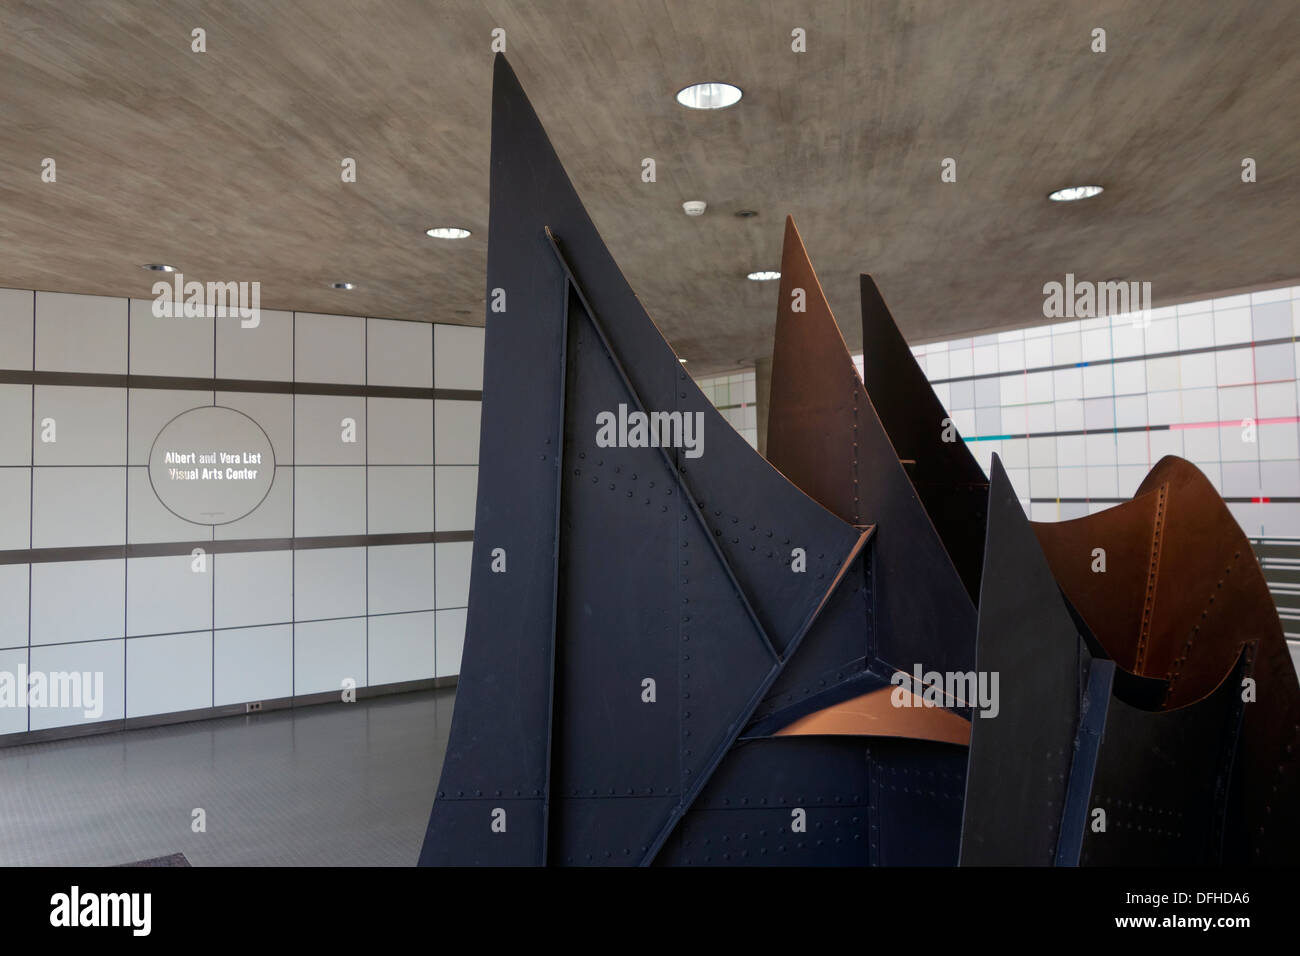 List Visual Arts Center at MIT - Stock Image